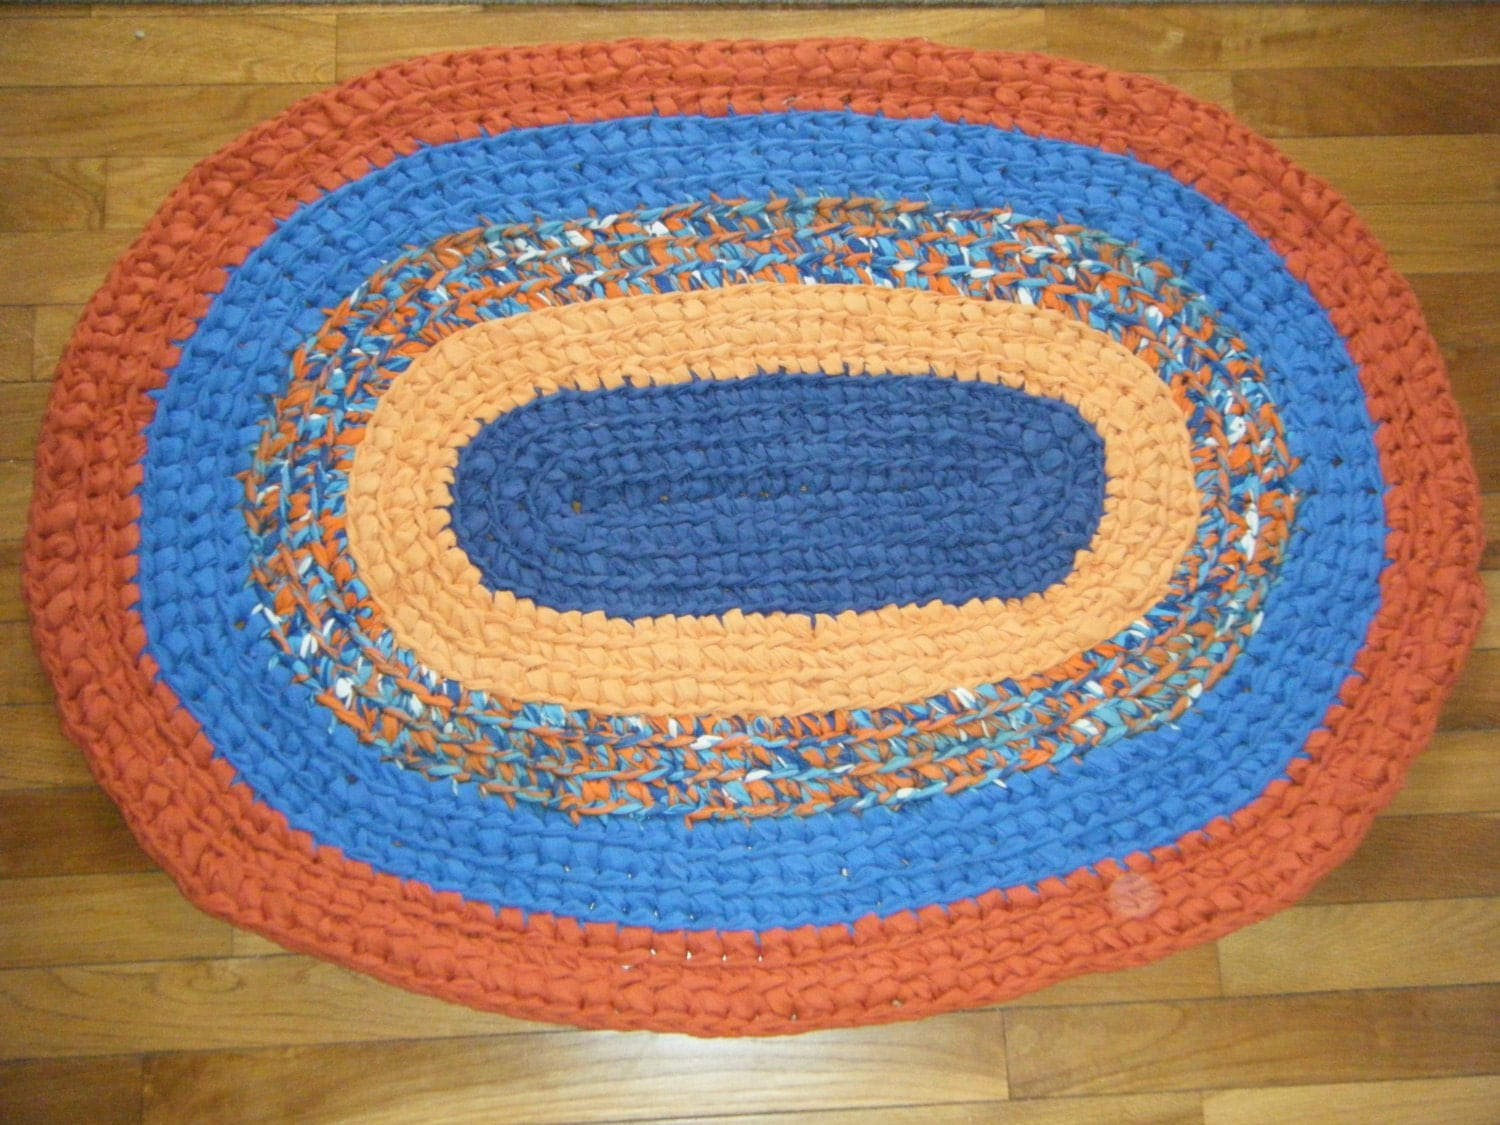 blue and orange oval areal rug for etsy. Black Bedroom Furniture Sets. Home Design Ideas